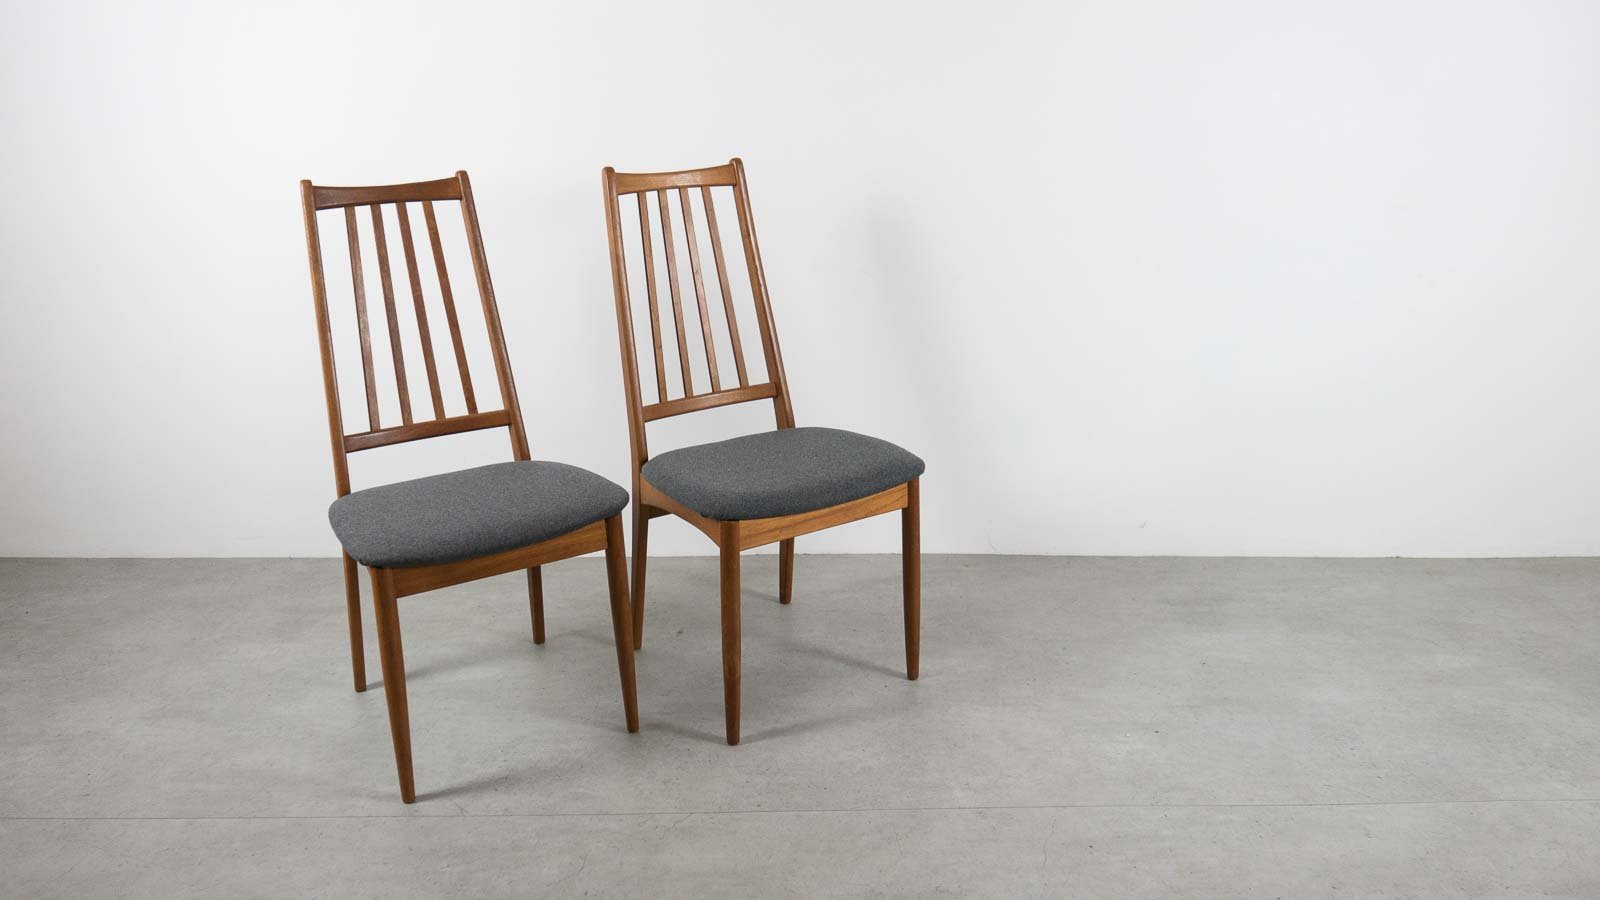 Vintage Danish HighBack Dining Chairs Set Of For Sale At Pamono - High back dining chairs